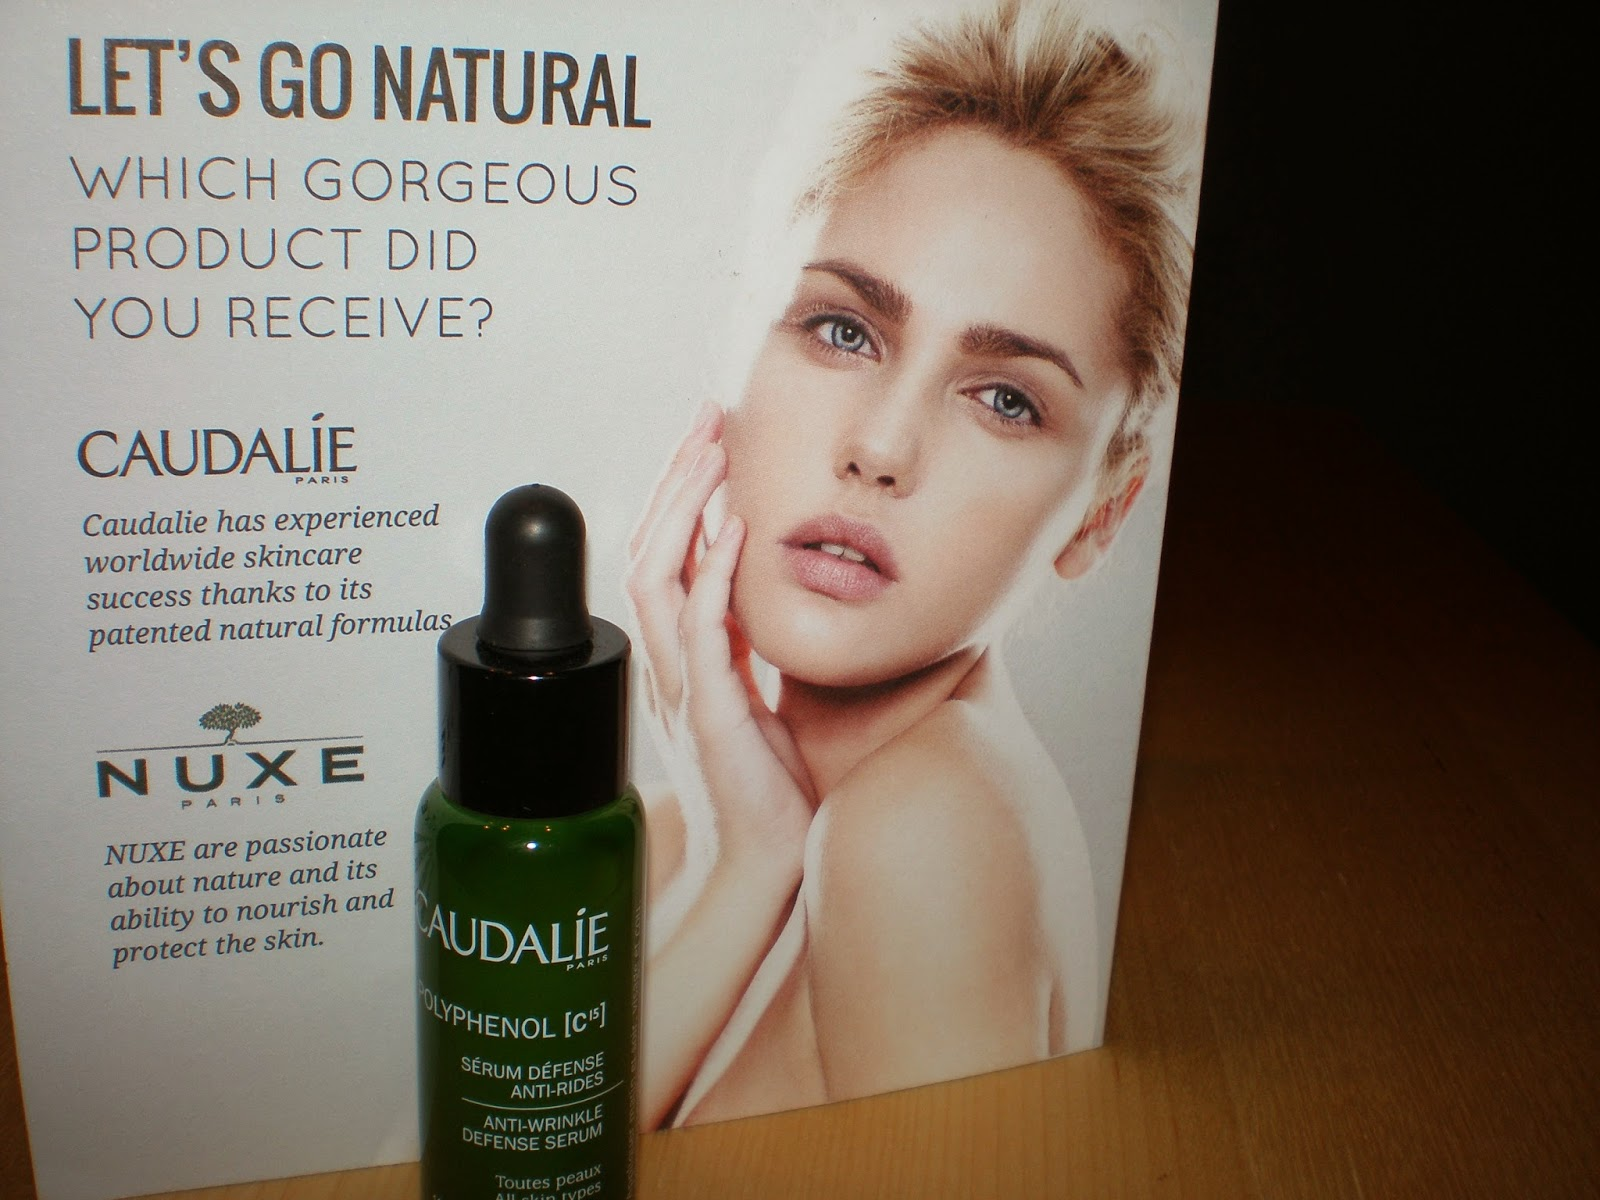 Caudalie Polyphenol c15 Anti Wrinkle Defense Serum